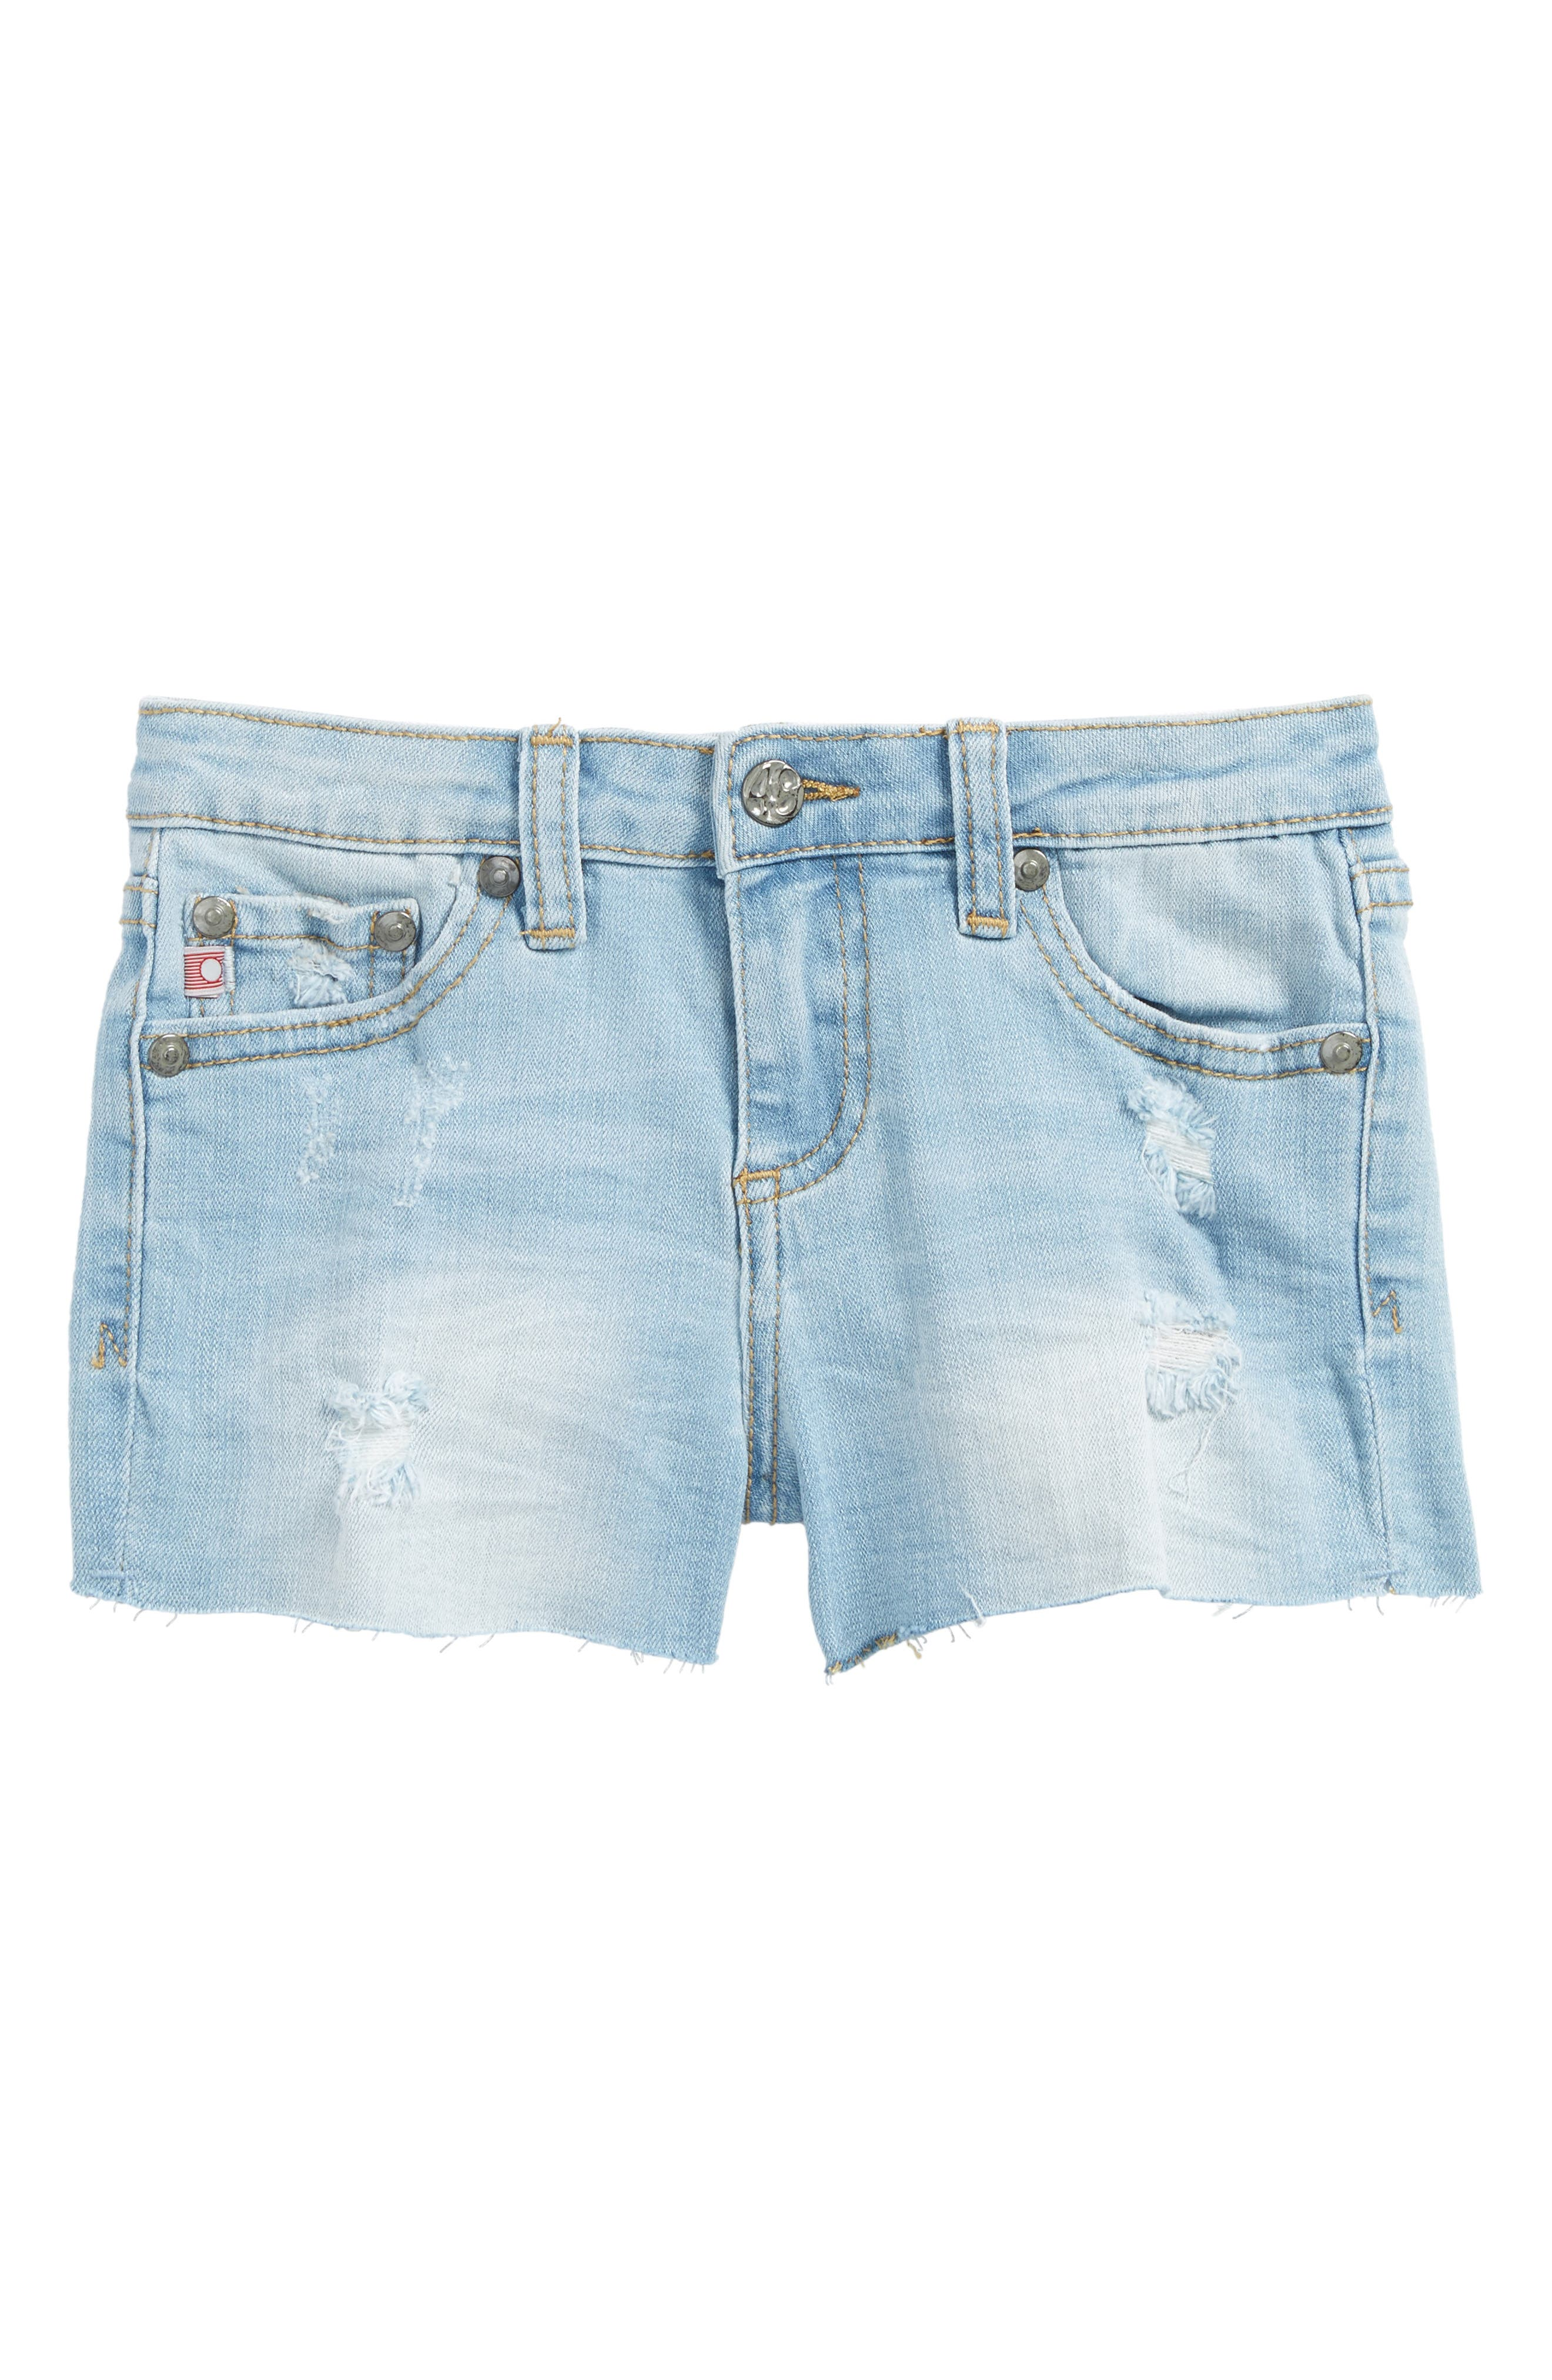 Alternate Image 1 Selected - ag adriano goldschmied kids The Shelby Cutoff Shorts (Toddler Girls & Little Girls)